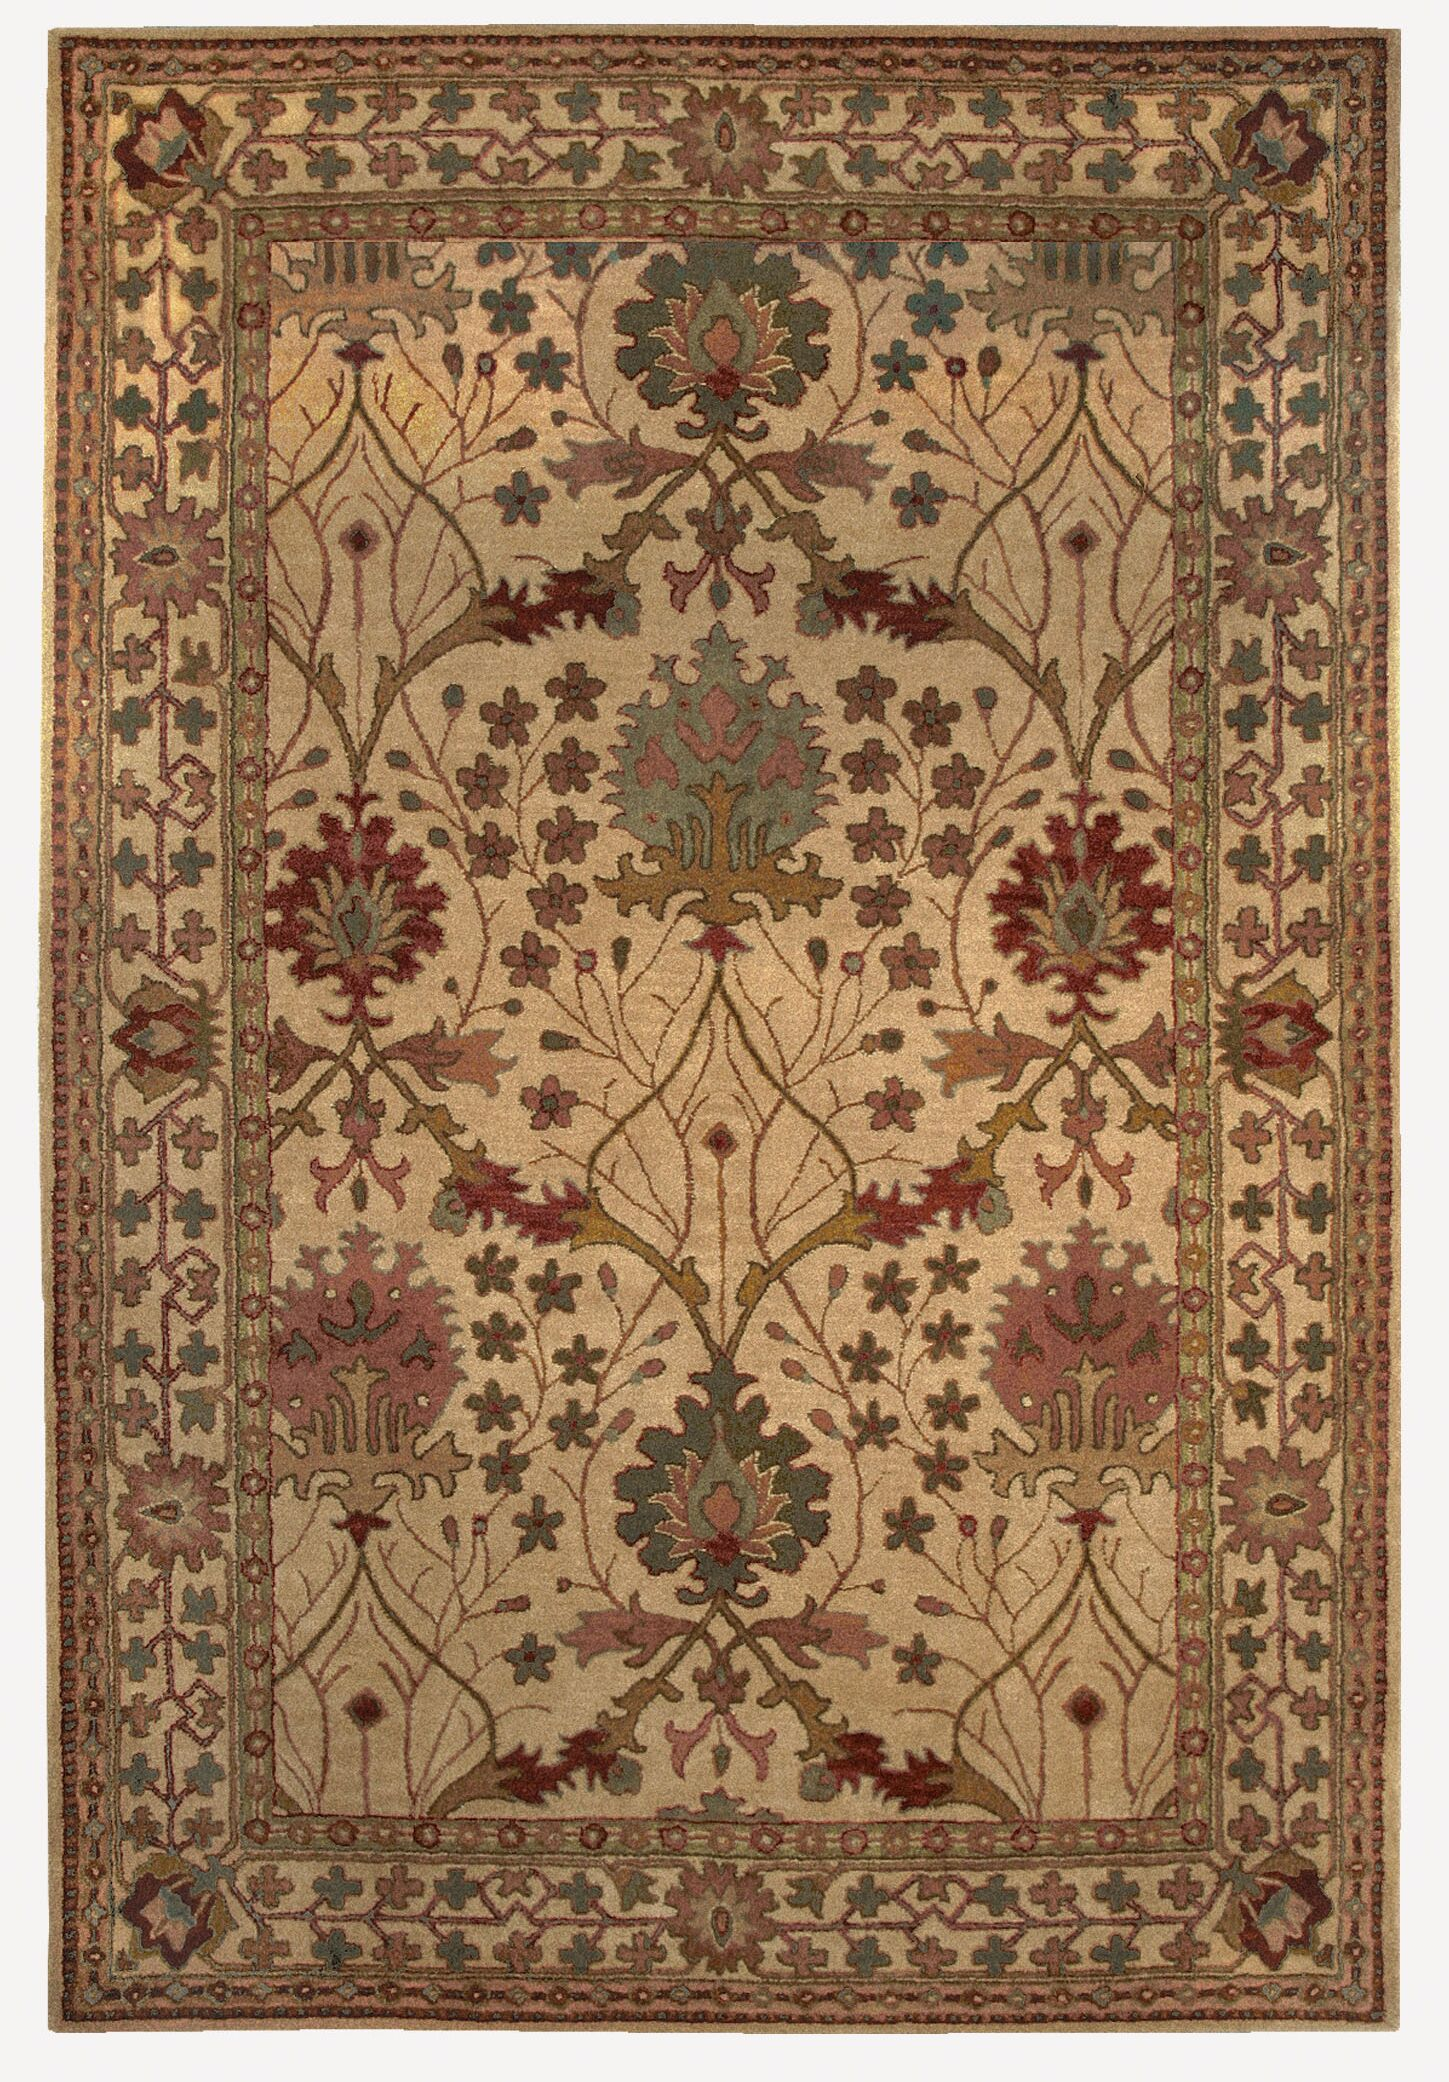 Gattis Hand-Tufted Beige Area Rug Rug Size: Rectangle 9' x 12'